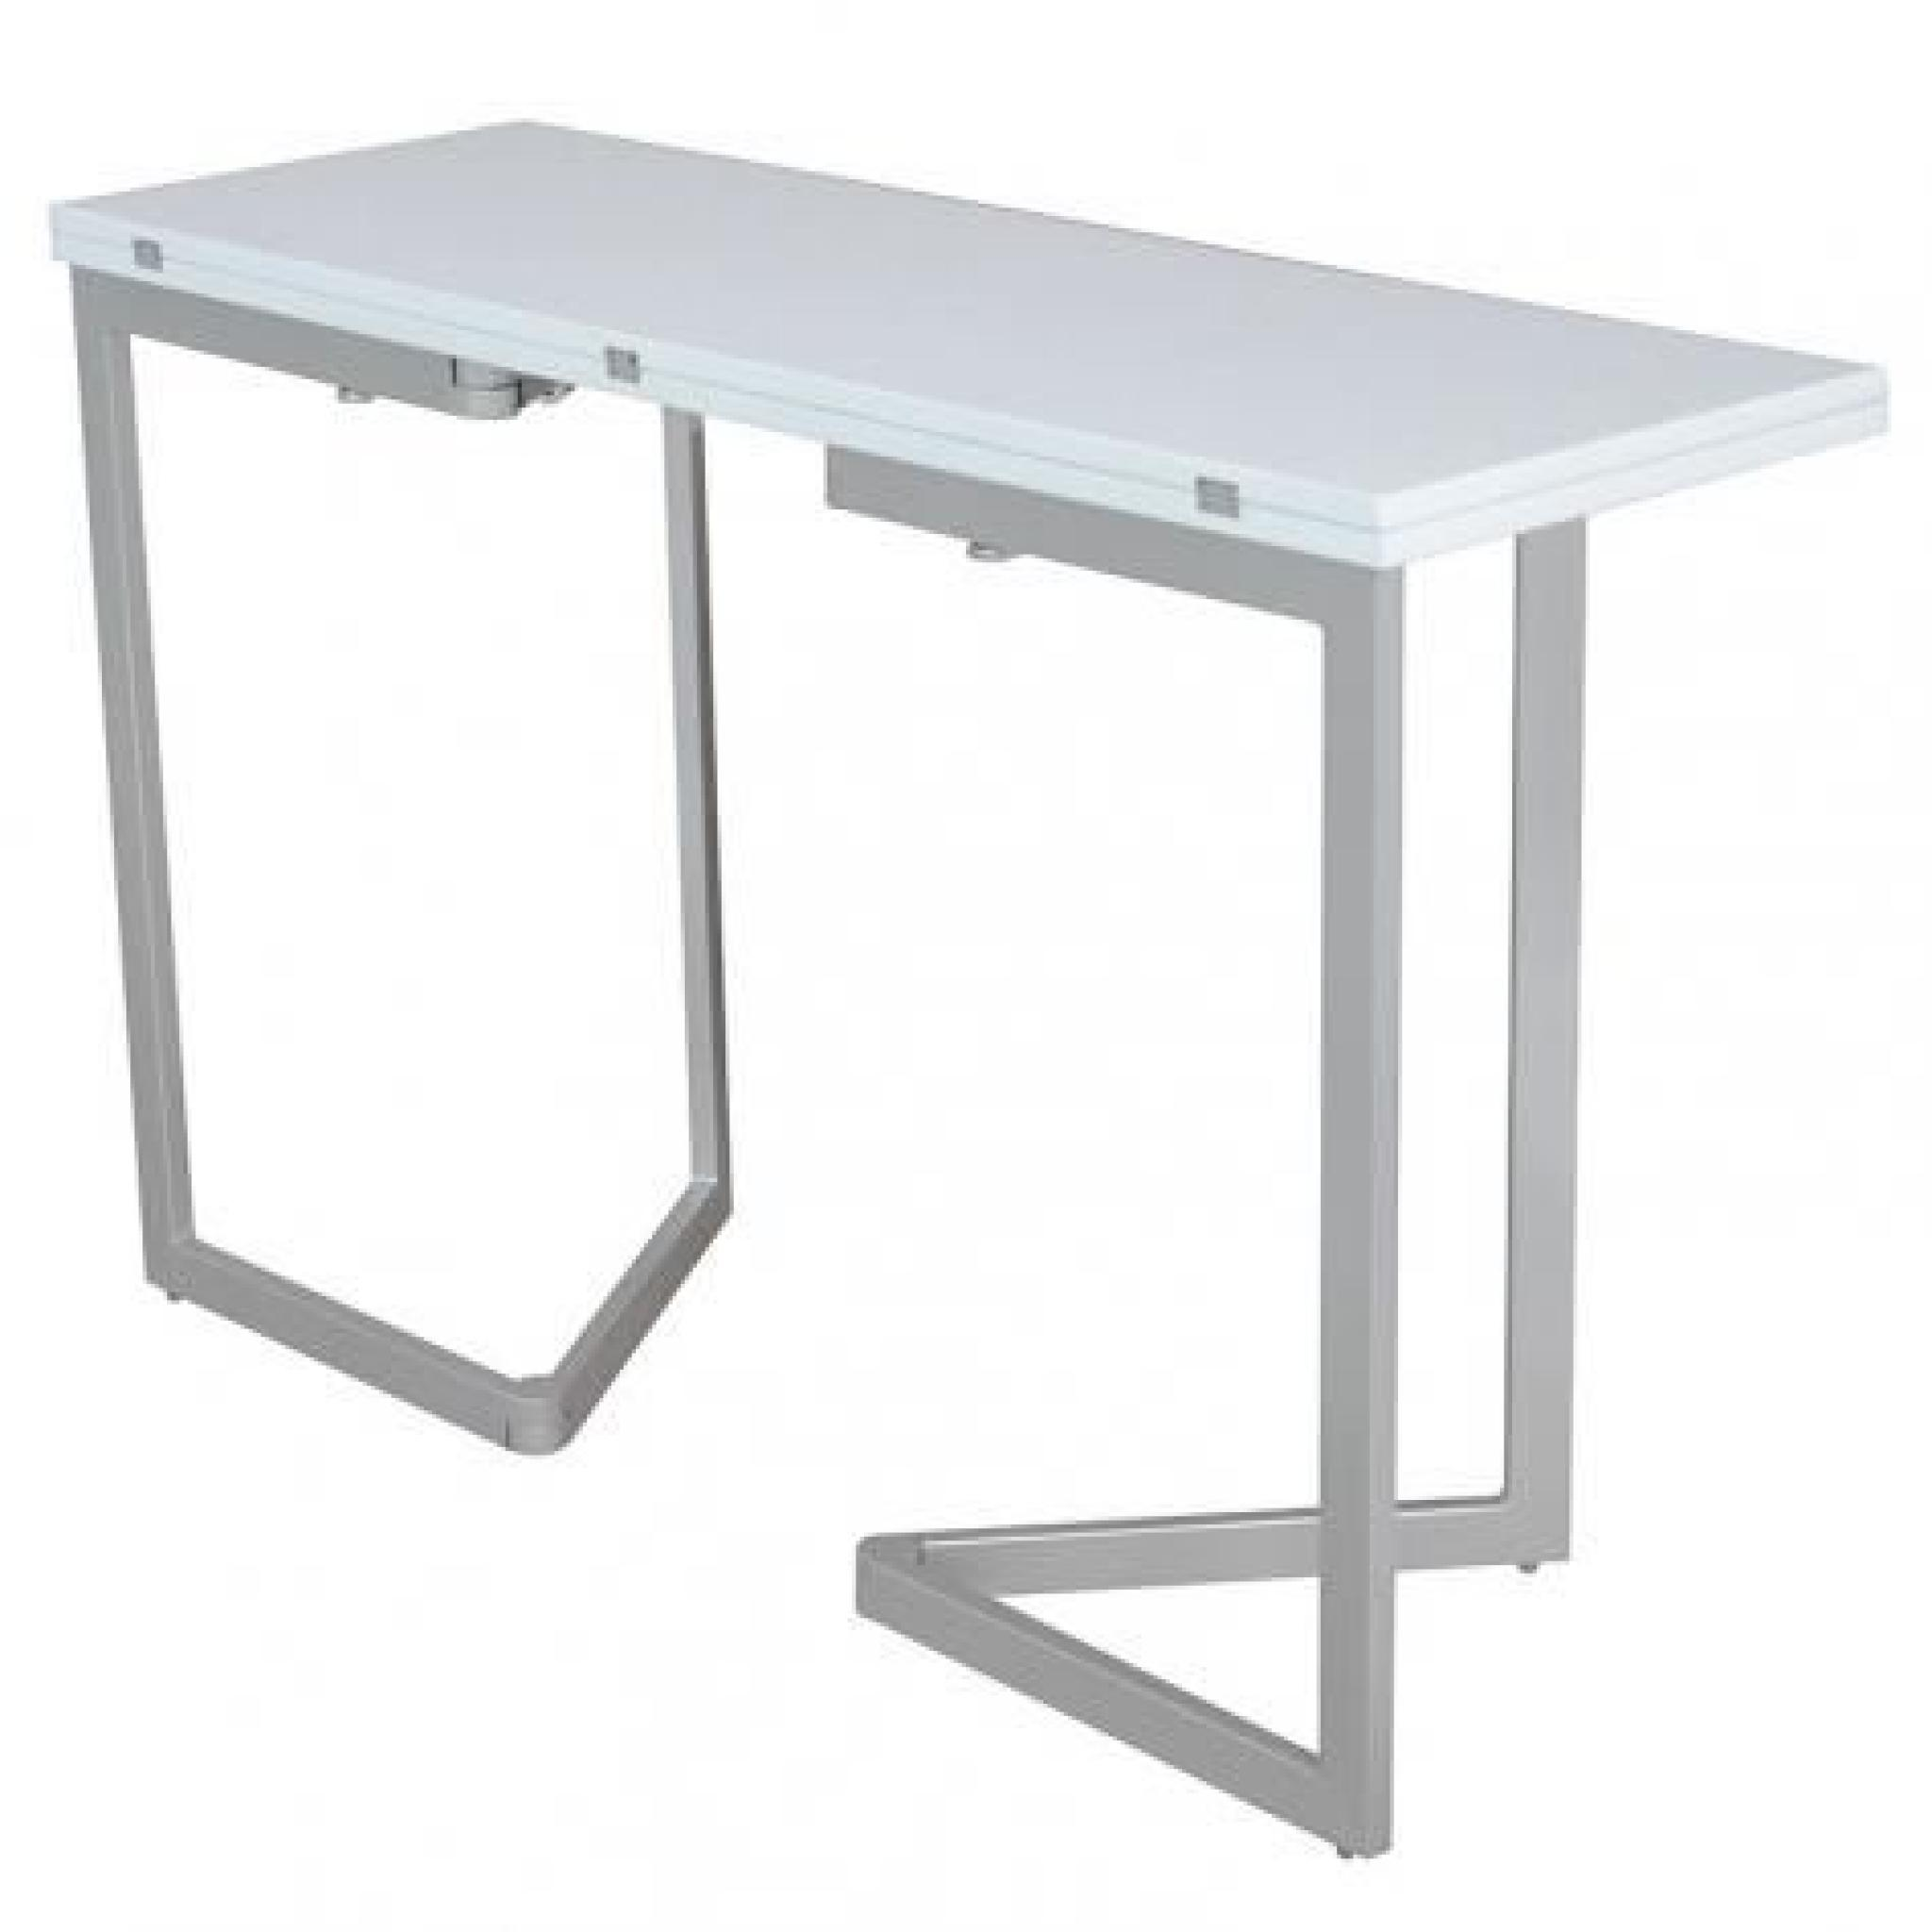 Table console extensible blanche laqu e talia achat for Table extensible design